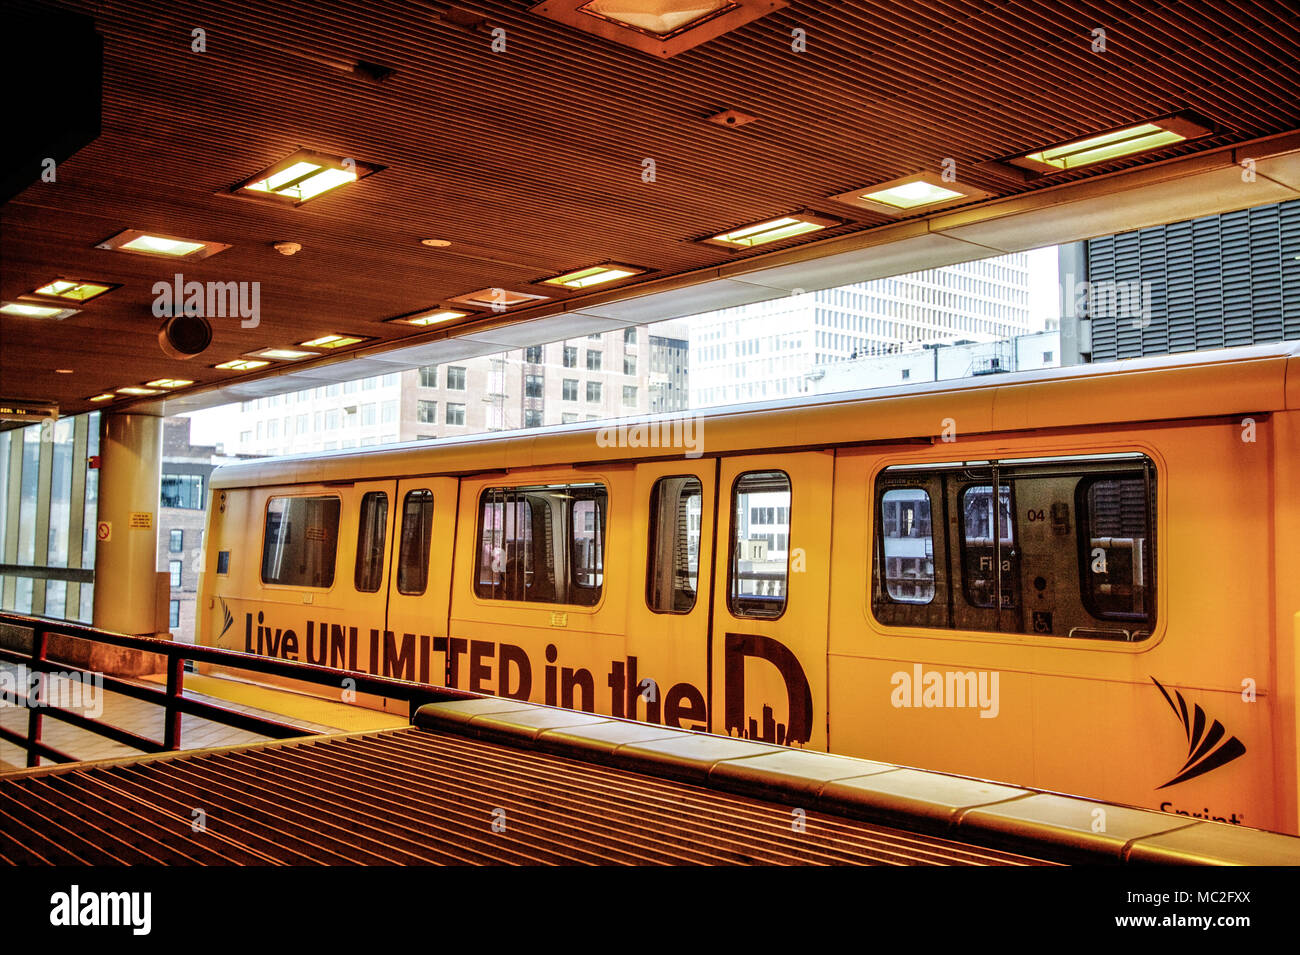 The Detroit People Mover leaves the station in downtown Detroit. The People Mover is a mass transit rail system that loops through the city with sever - Stock Image